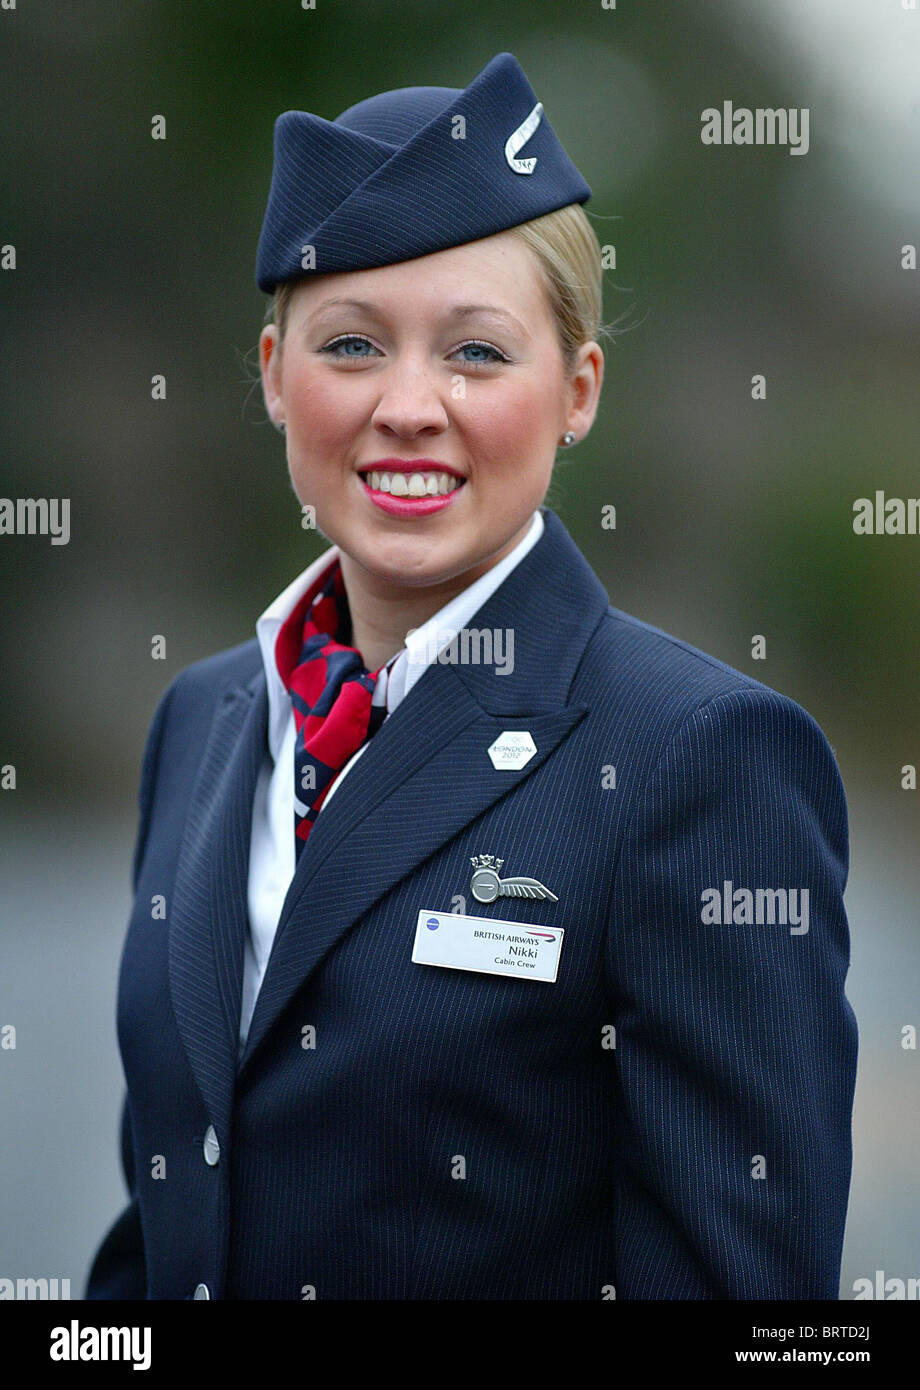 A British Airways Air Stewardess Picture By James